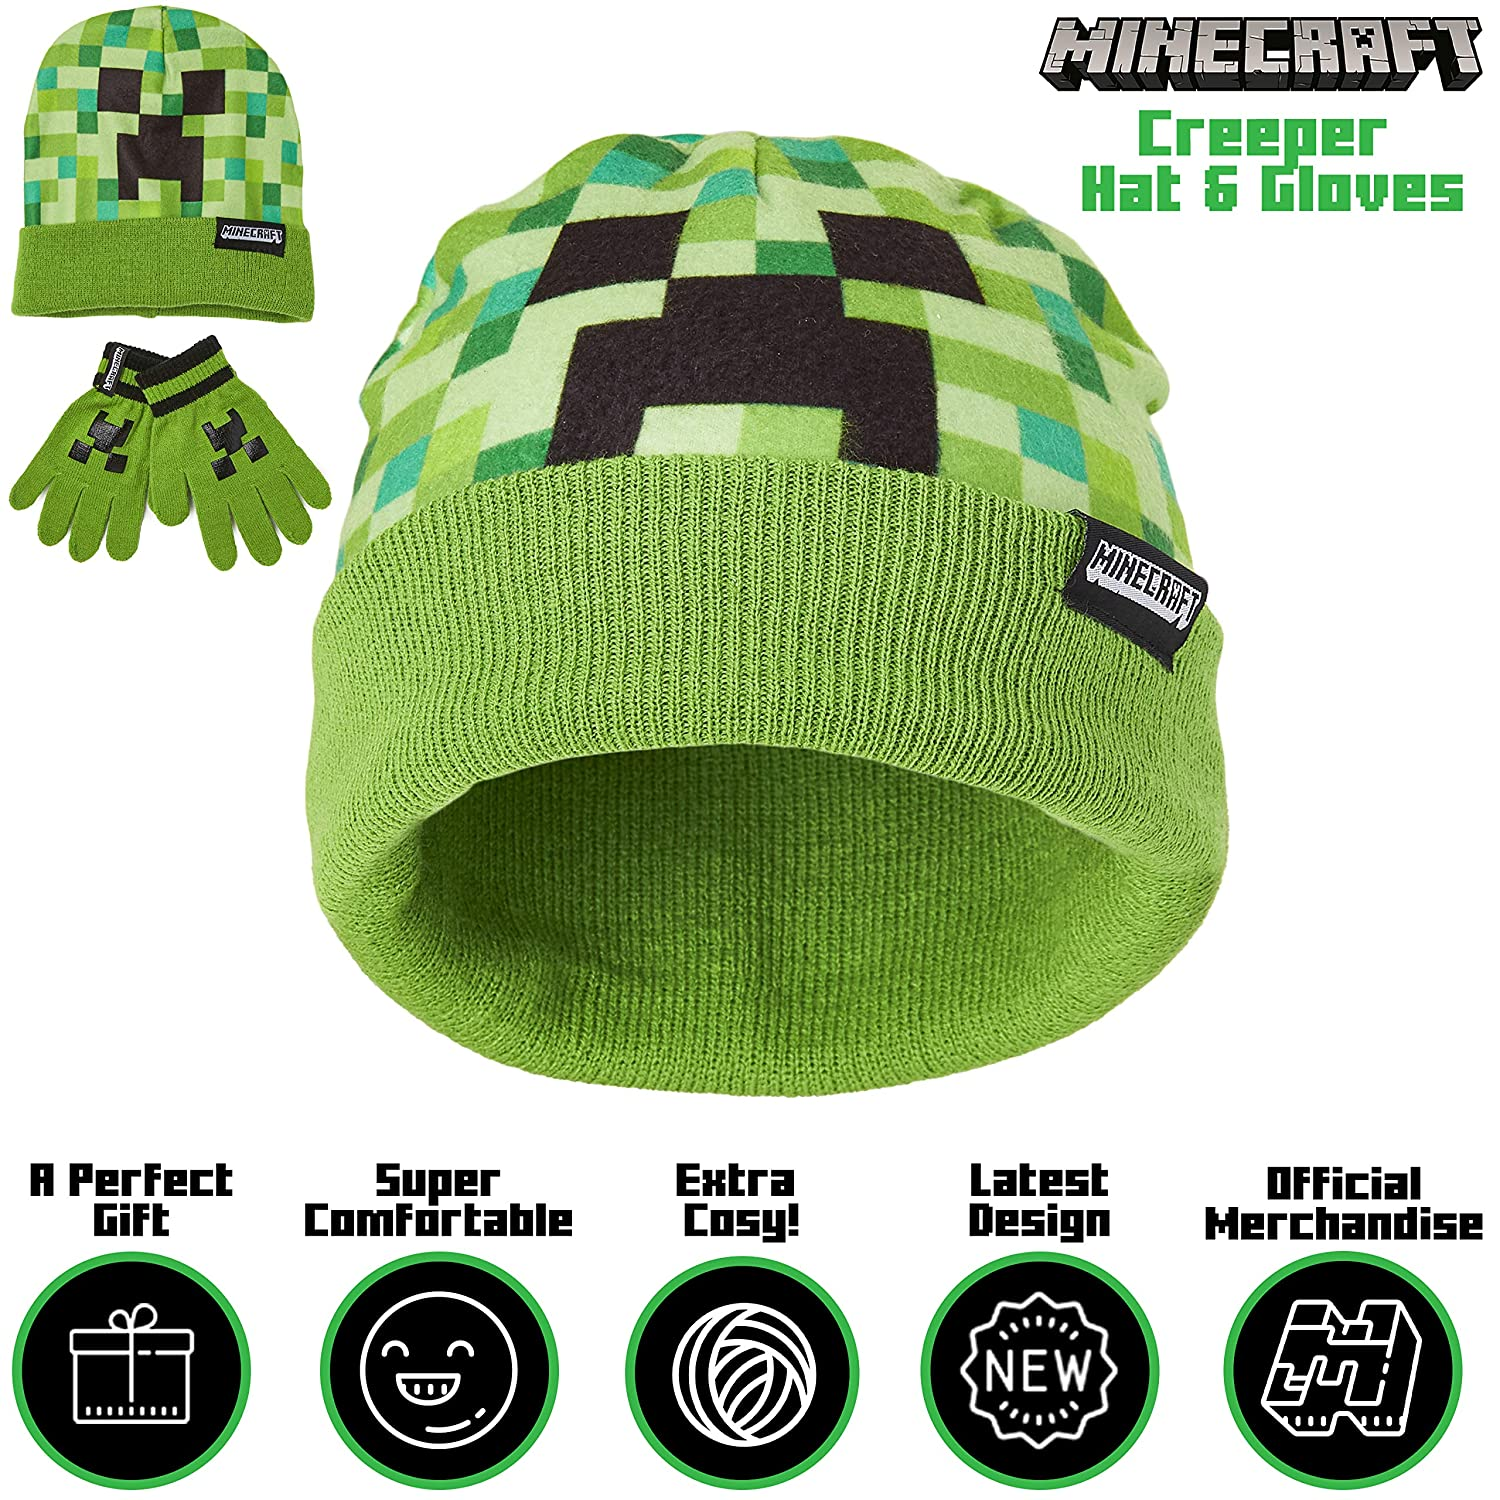 Green Beanie Hat Featuring Creeper Pixel Design Great Gaming Gift Idea for Boys or Girls Super Soft and Comfortable Kids Hat Official Minecraft Merchandise Minecraft Hat And Gloves For Boys